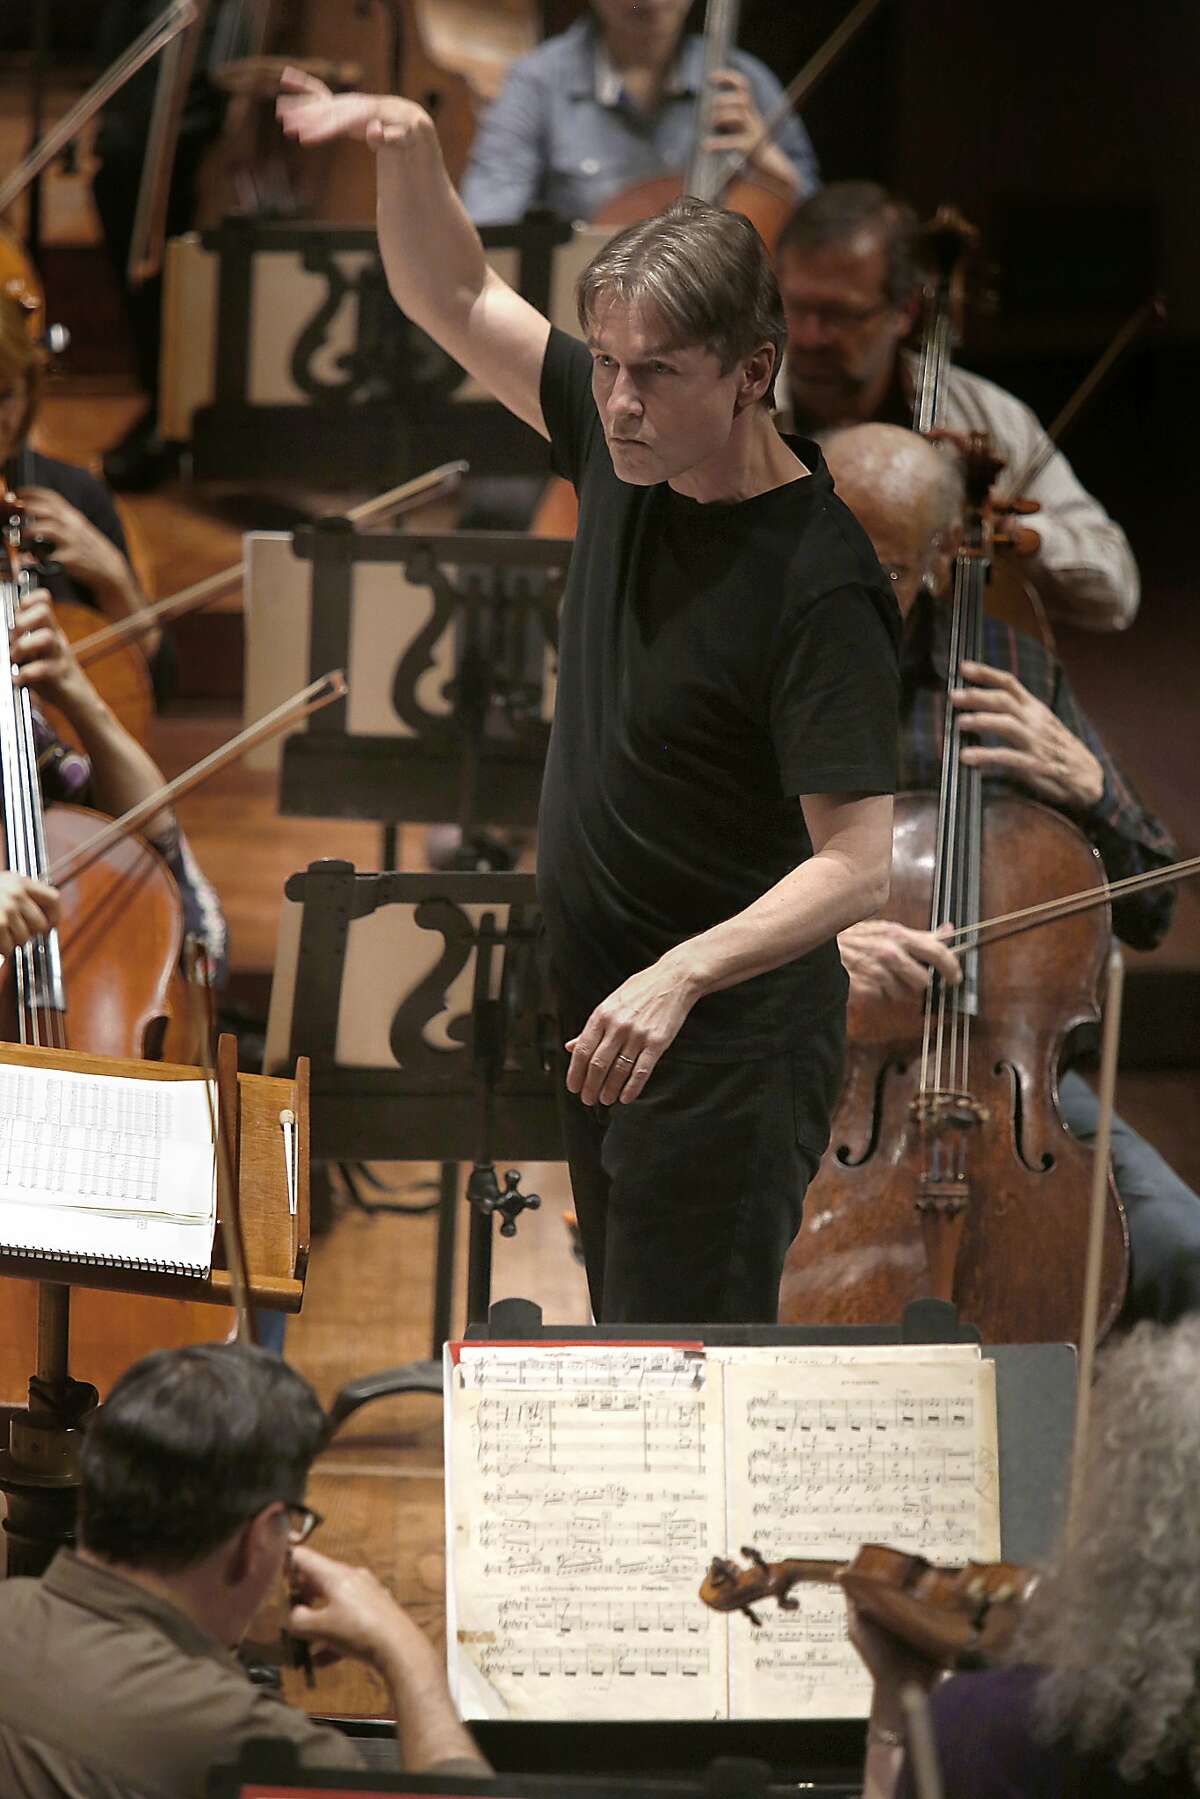 Esa-Pekka Salonen conducts during a rehearsal with the San Francisco symphony at Davies Hall in San Francisco, California, on Wednesday, April 29, 2015.